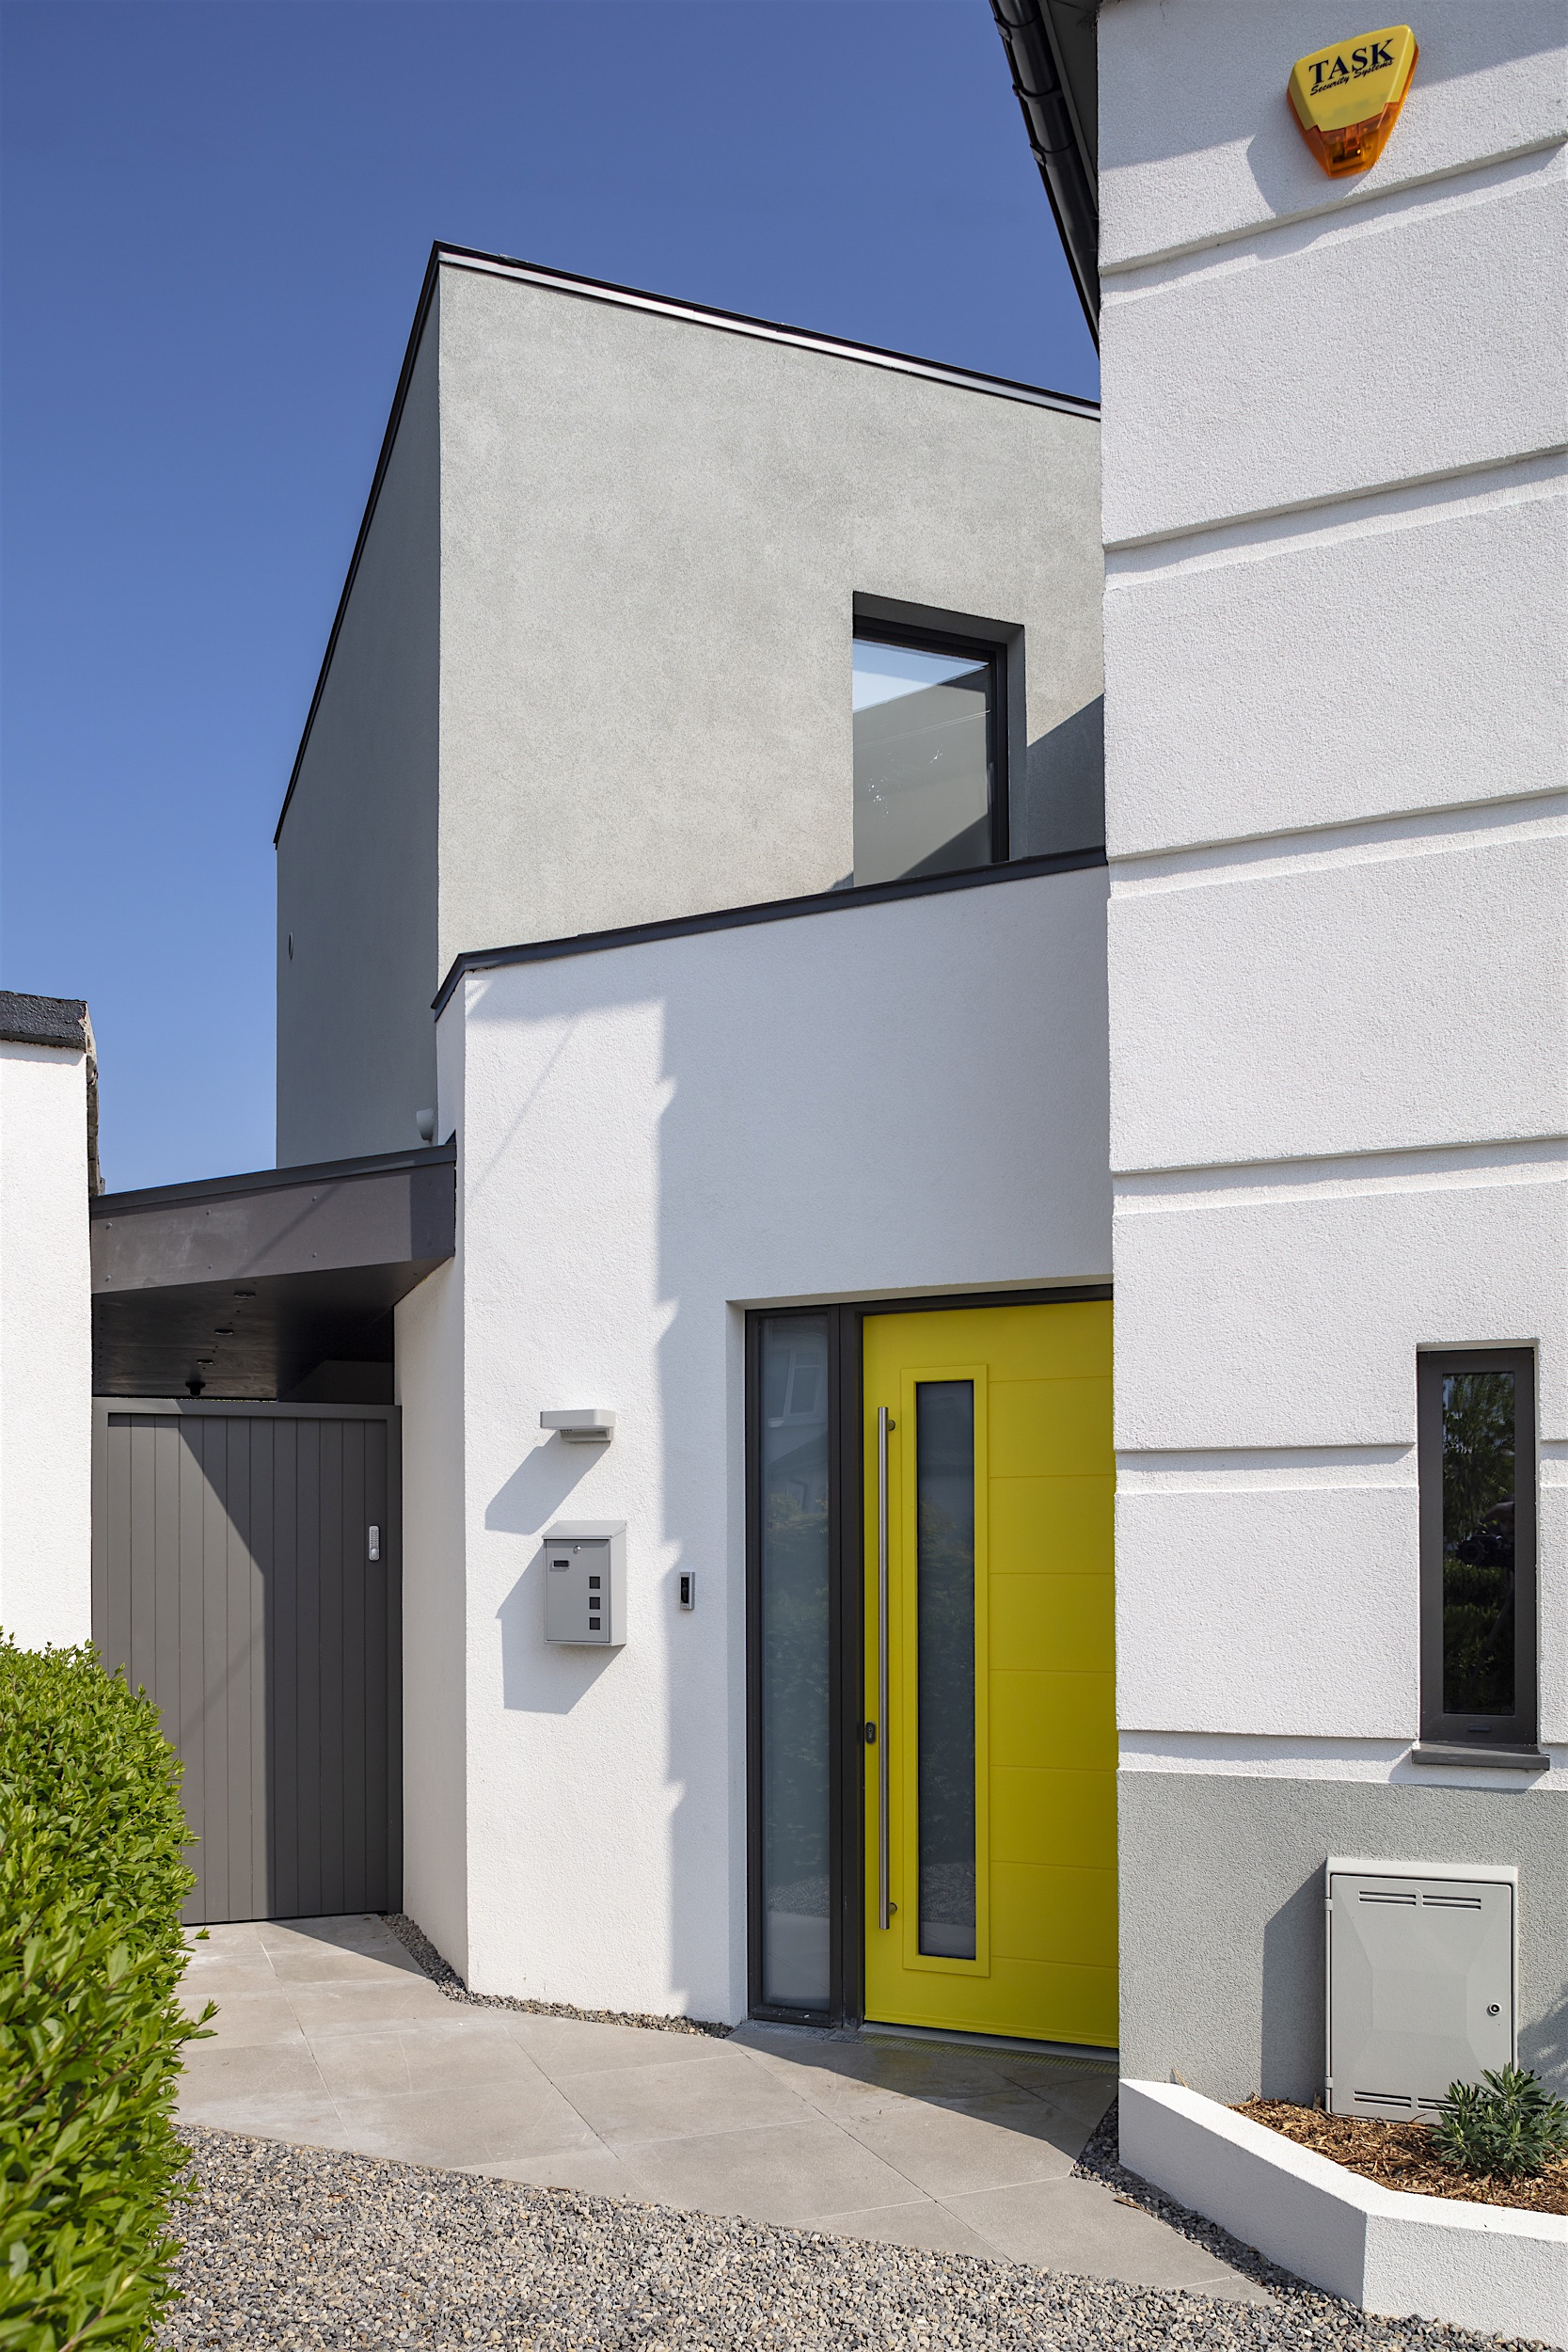 BRENNAN_FURLONG_RENOVATION_EXTENSION_HOMEFARM_PARK_DRUMCONDRA (2).jpg